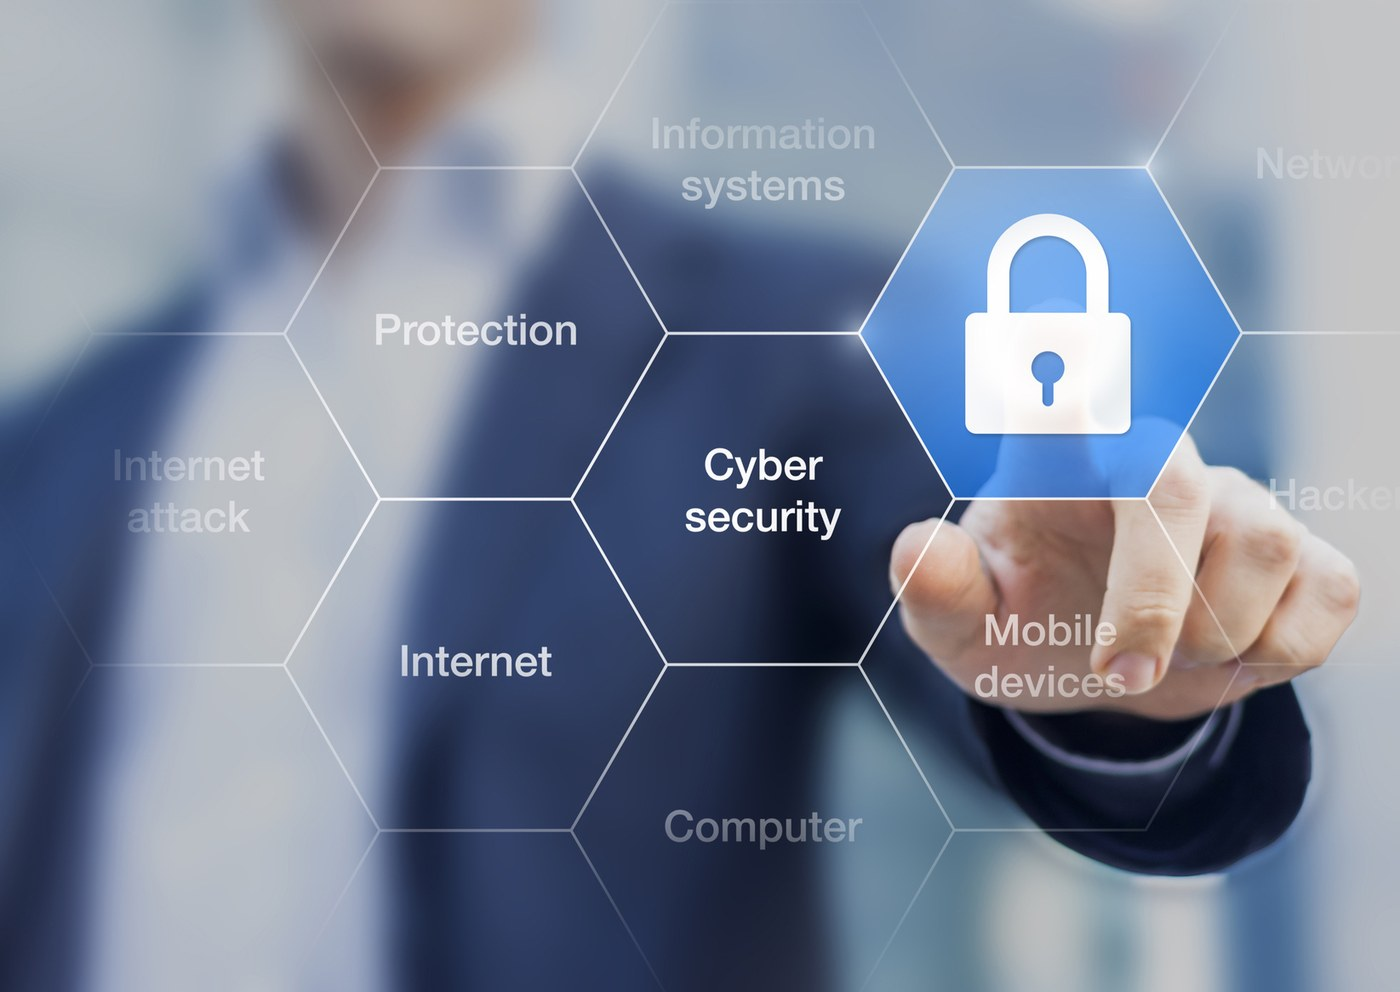 Cyber safety has become an important feature for business protection